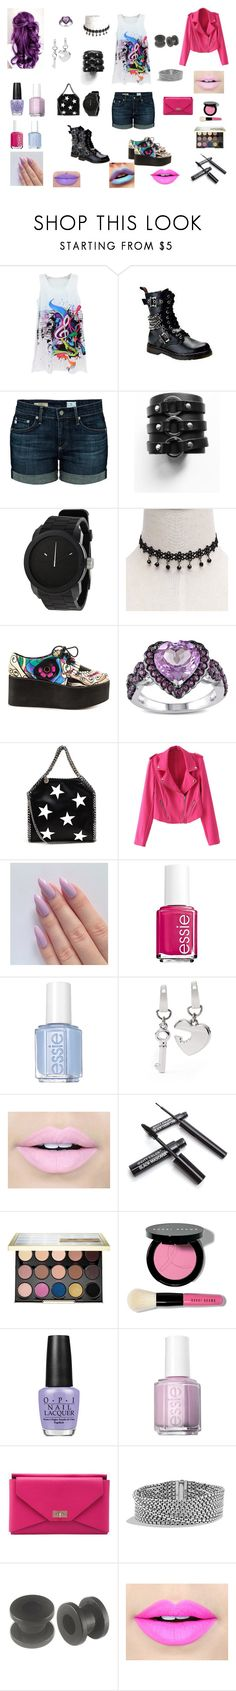 """""""Untitled #215"""" by knight-lover ❤ liked on Polyvore featuring AG Adriano Goldschmied, Diesel, Iron Fist, Miadora, STELLA McCARTNEY, Essie, FOSSIL, Fiebiger, Urban Decay and Bobbi Brown Cosmetics"""